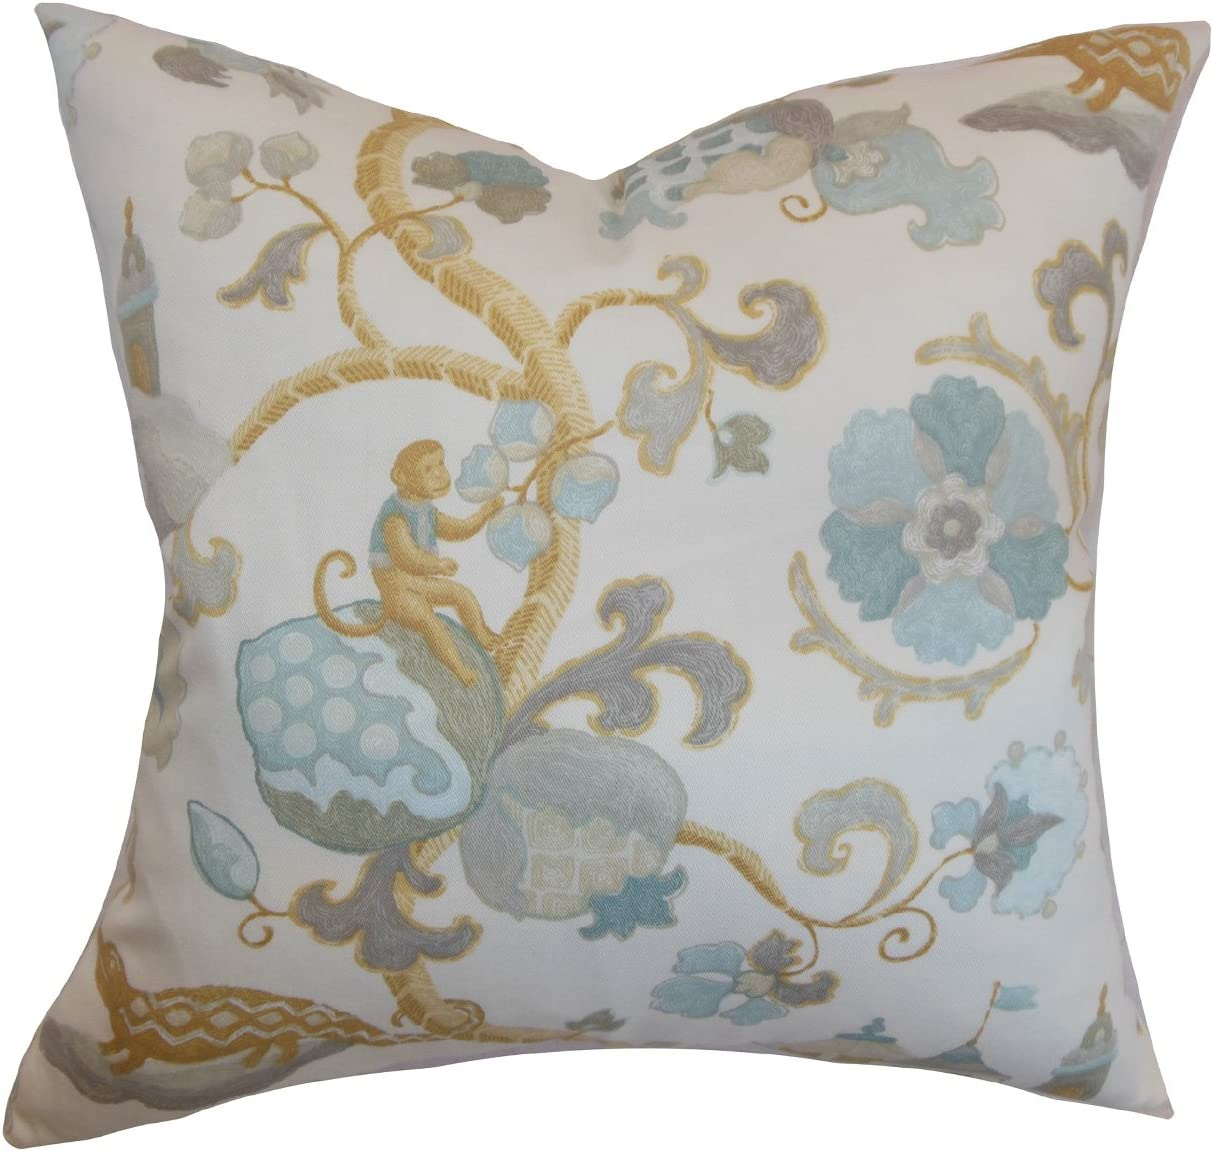 The Pillow Collection Majella Floral Pillow, Natural Aqua